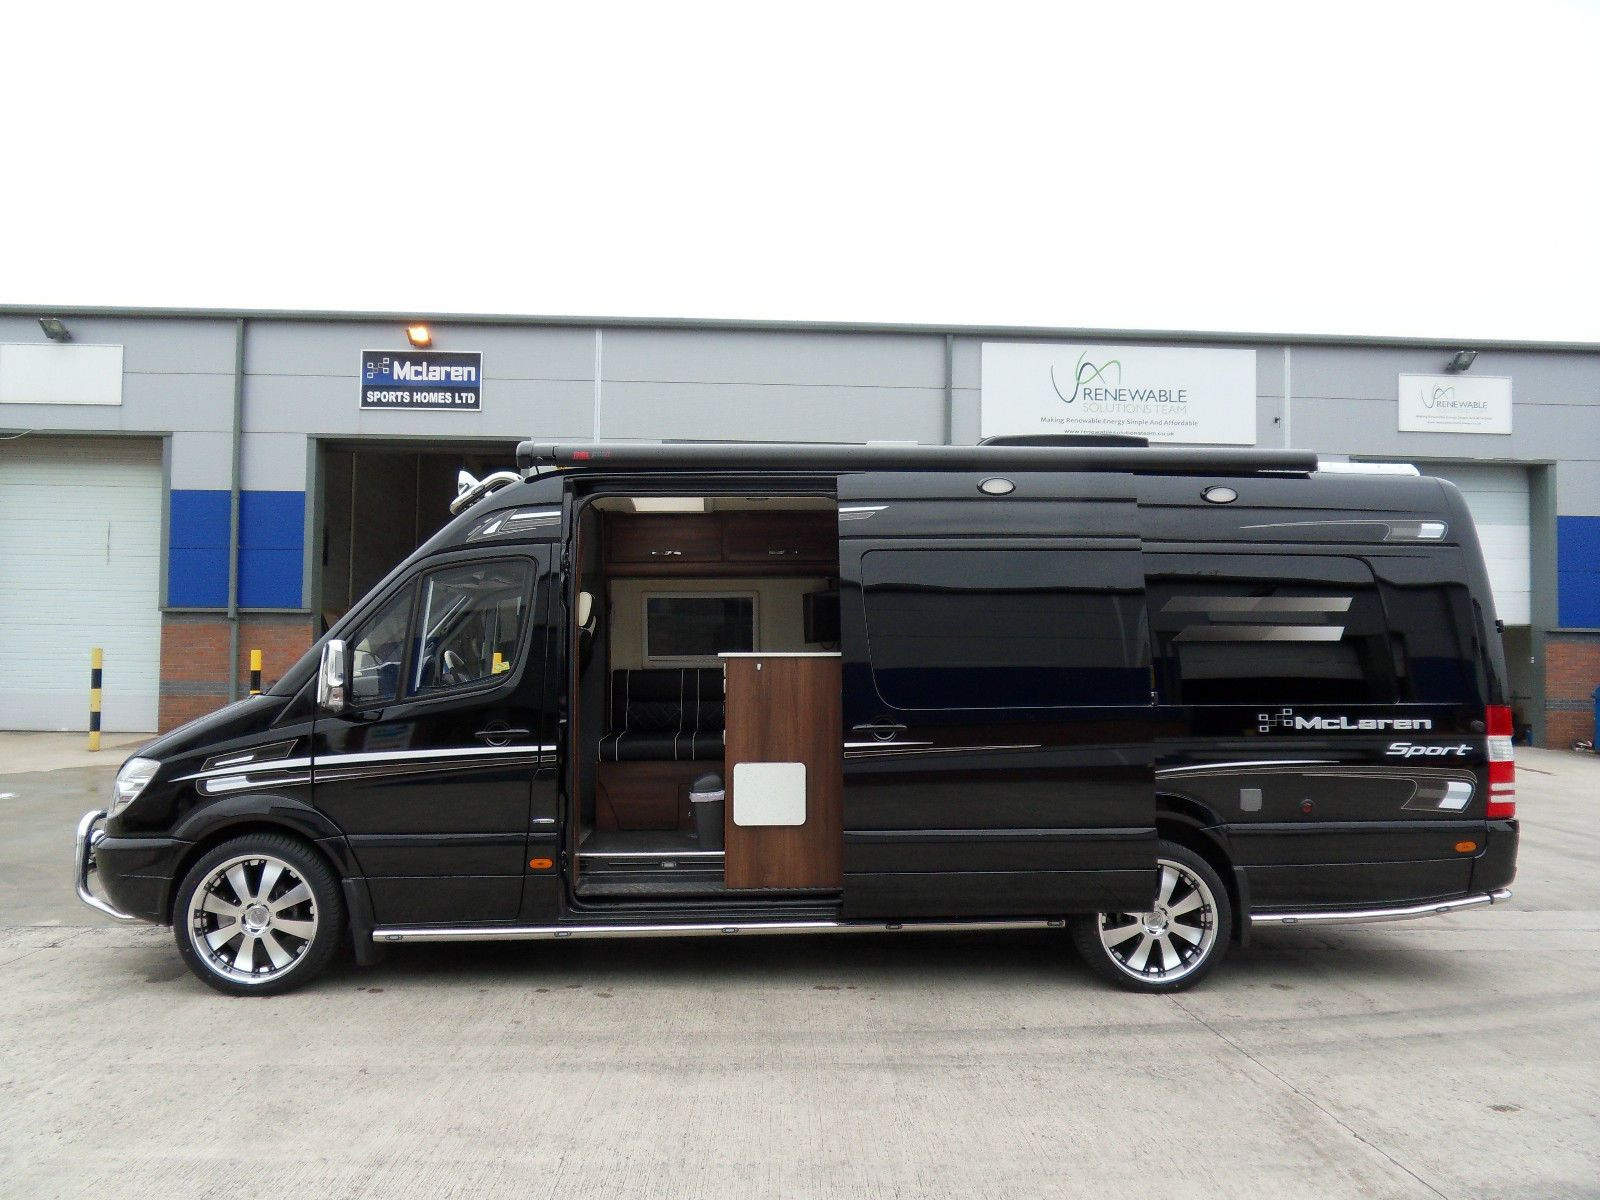 Ford Transit 4x4 Camping Car >> Mclaren Sporthome Race Van - Mercedes Sprinter VW Crafter Motorhome Conversion | Vans ...